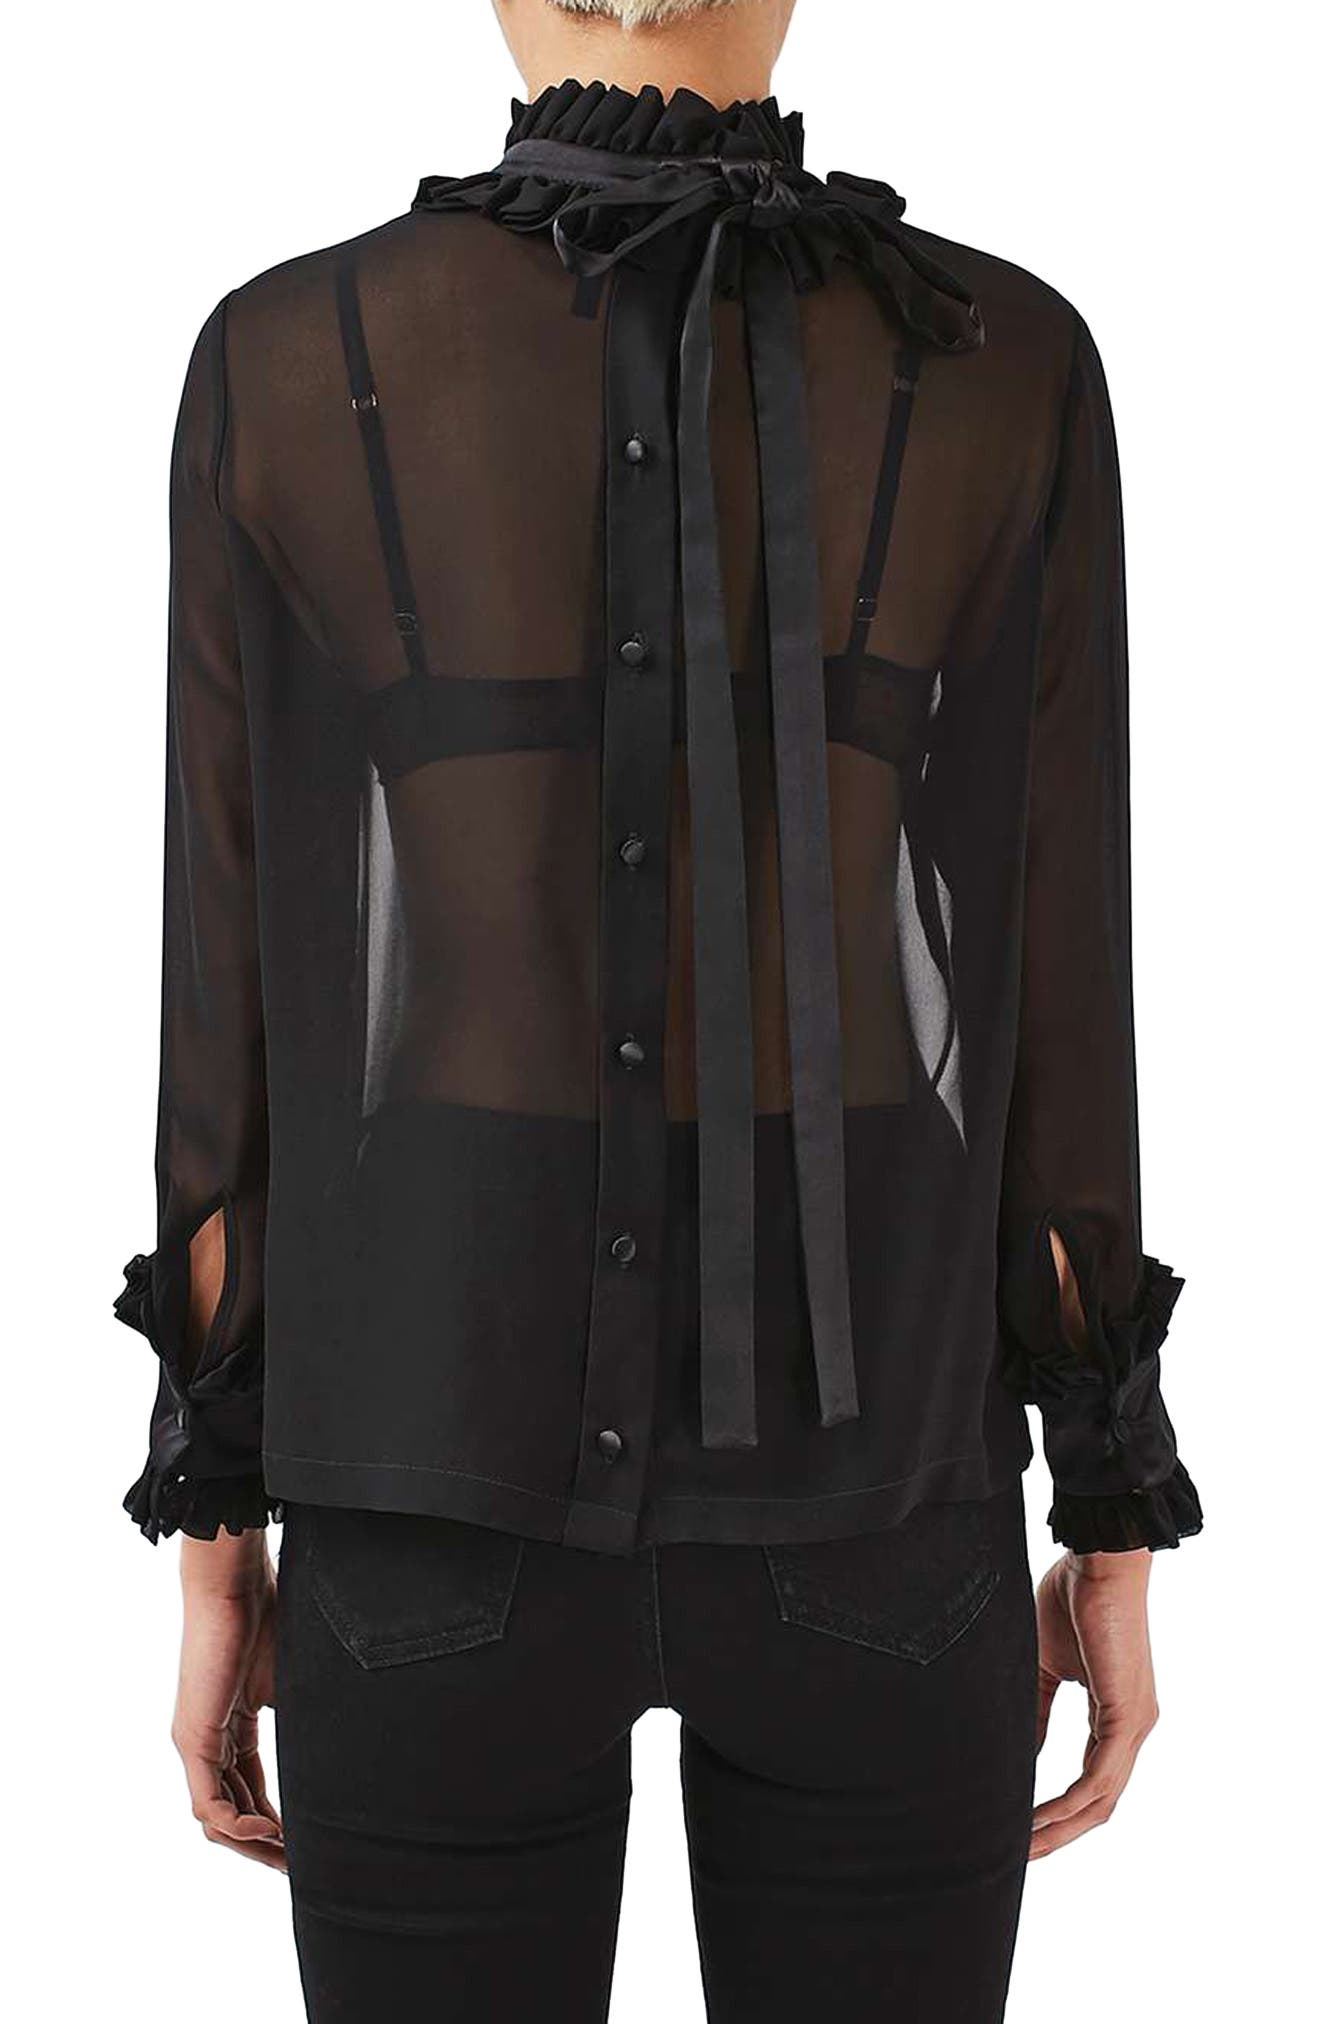 Hagen Sheer Silk Blouse,                             Alternate thumbnail 3, color,                             Black